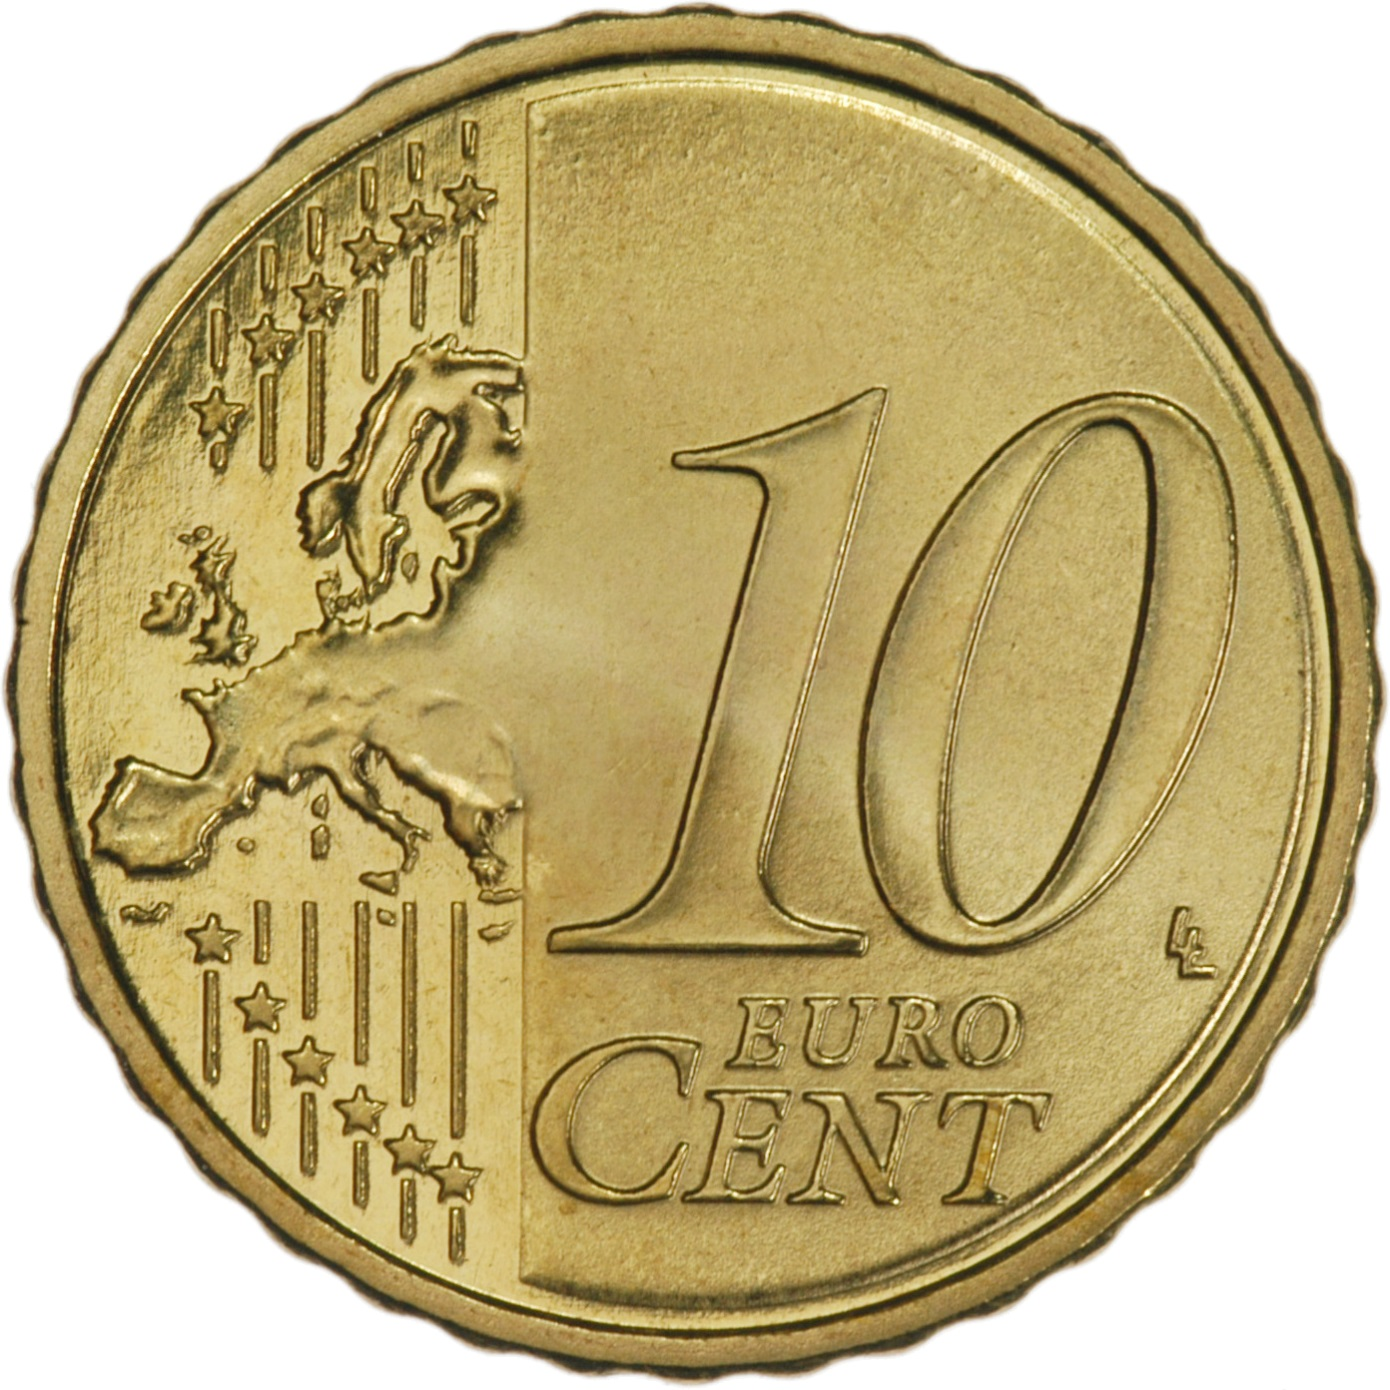 euro coin pictures and specifications. Black Bedroom Furniture Sets. Home Design Ideas